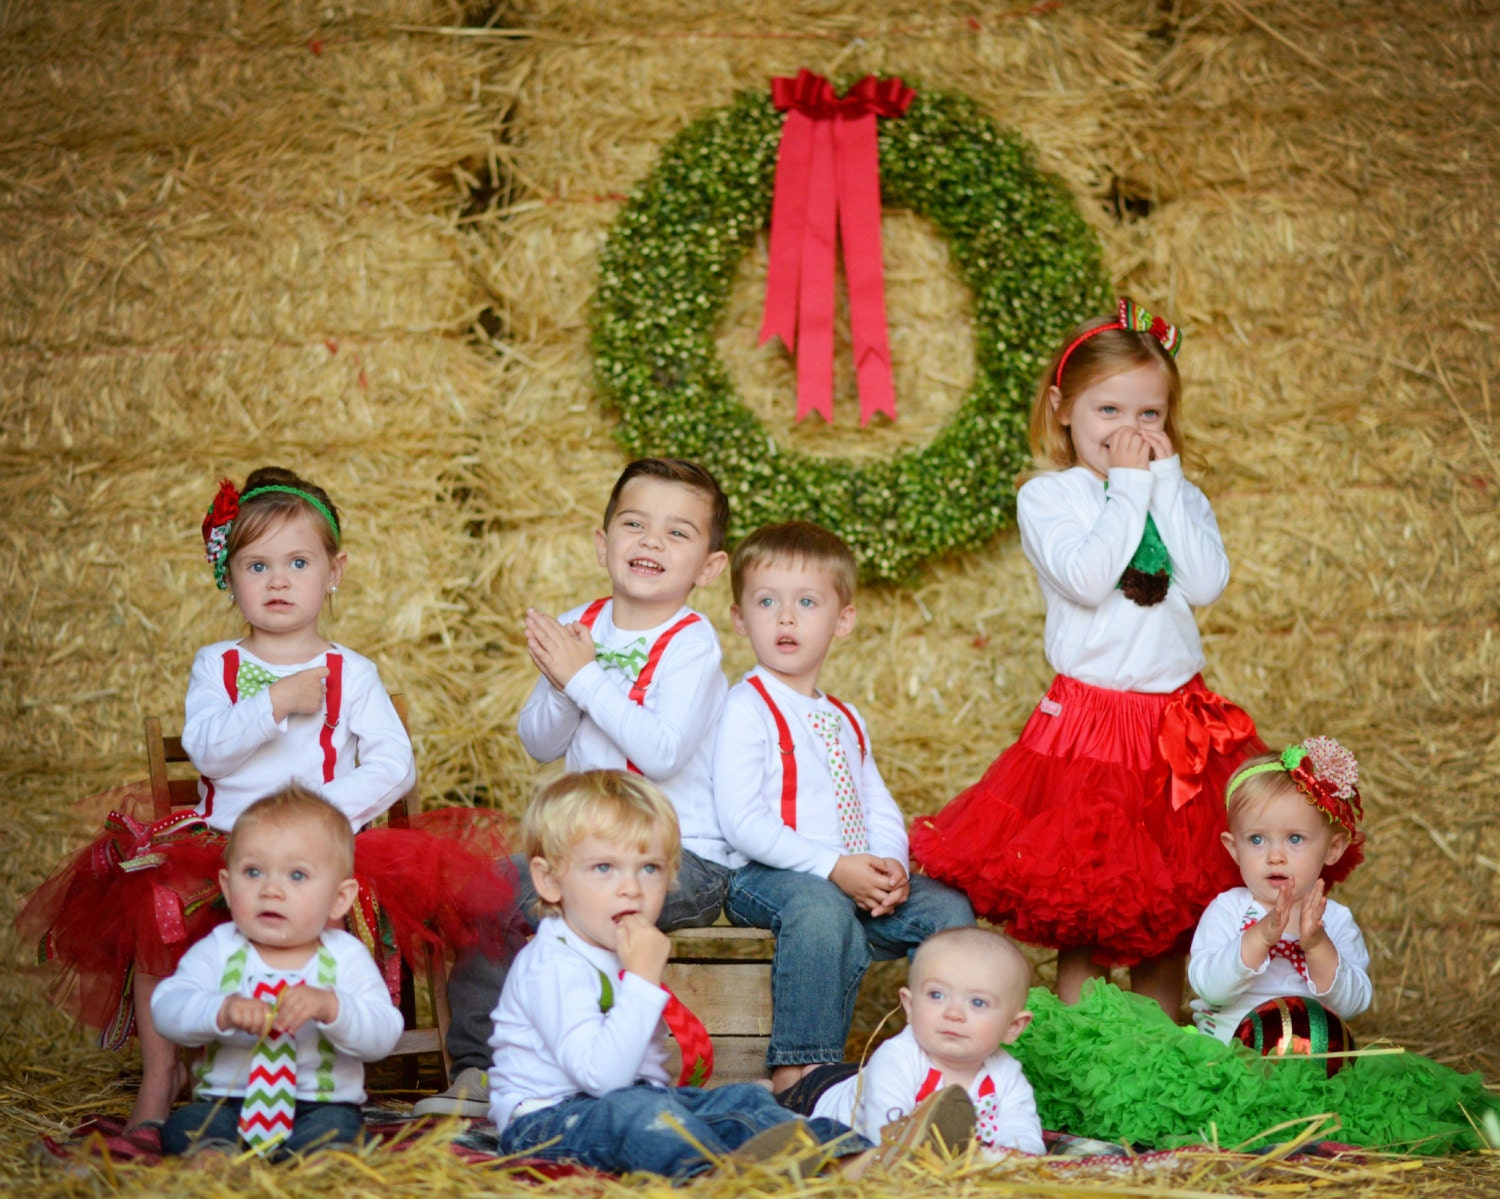 Sibling Christmas Outfits Holiday Clothes Newborn Boy